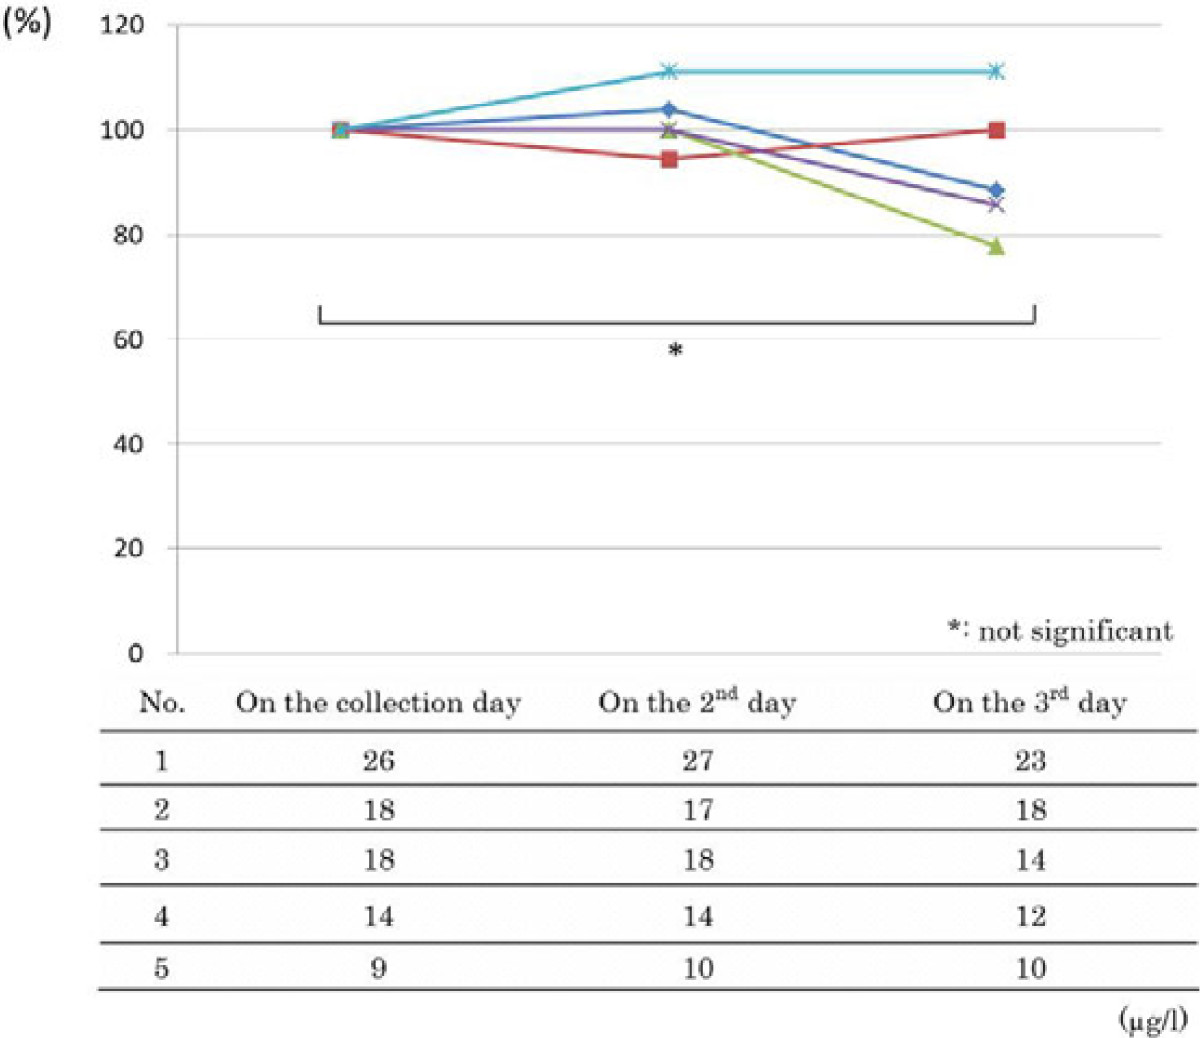 http://static-content.springer.com/image/art%3A10.1186%2F1745-6673-7-24/MediaObjects/12995_2012_Article_213_Fig1_HTML.jpg